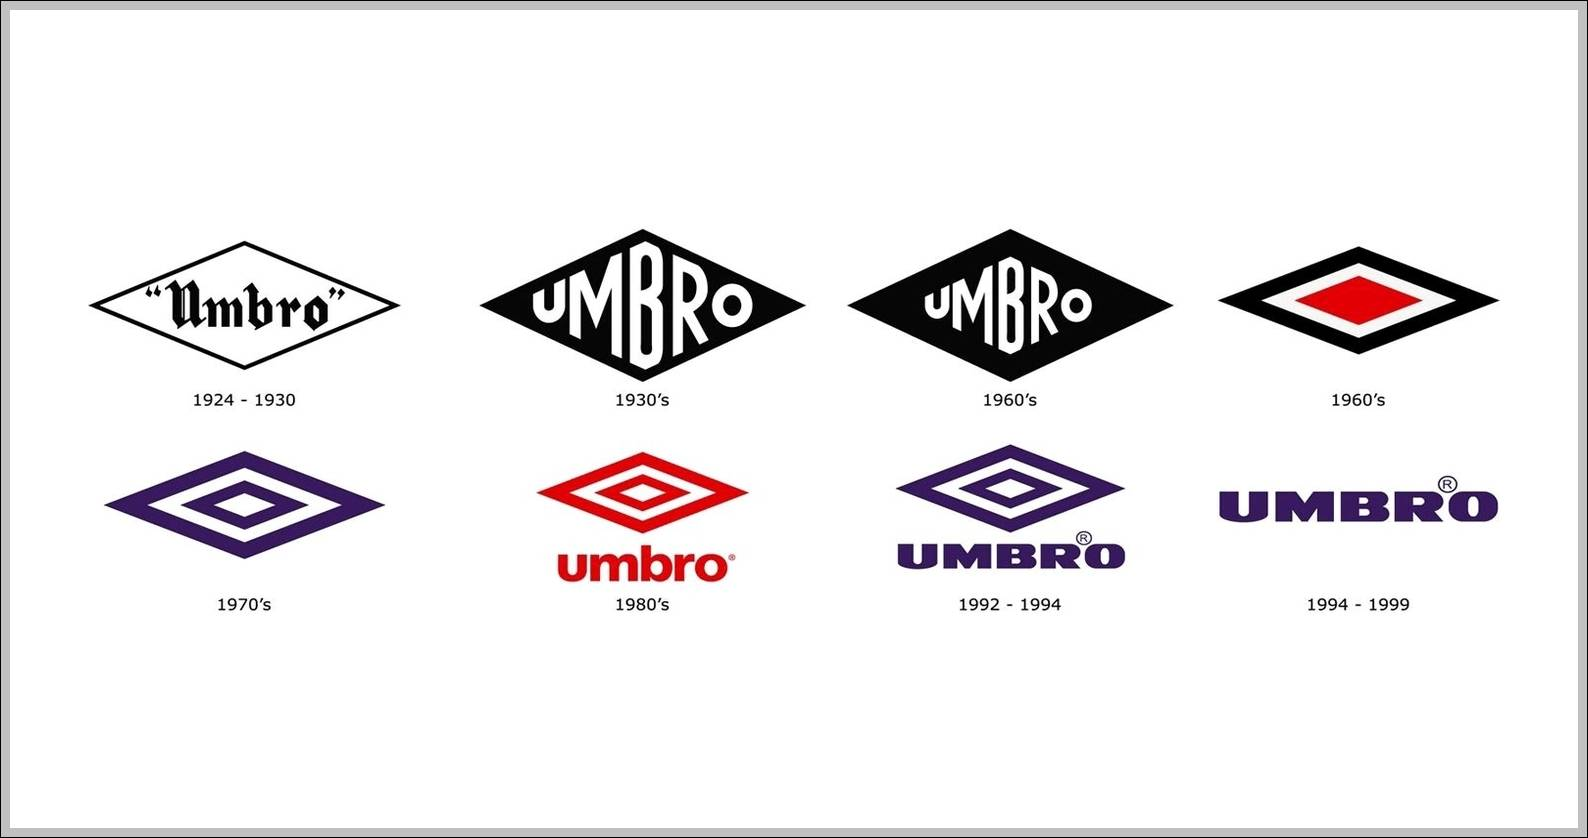 Umbro logo evolution